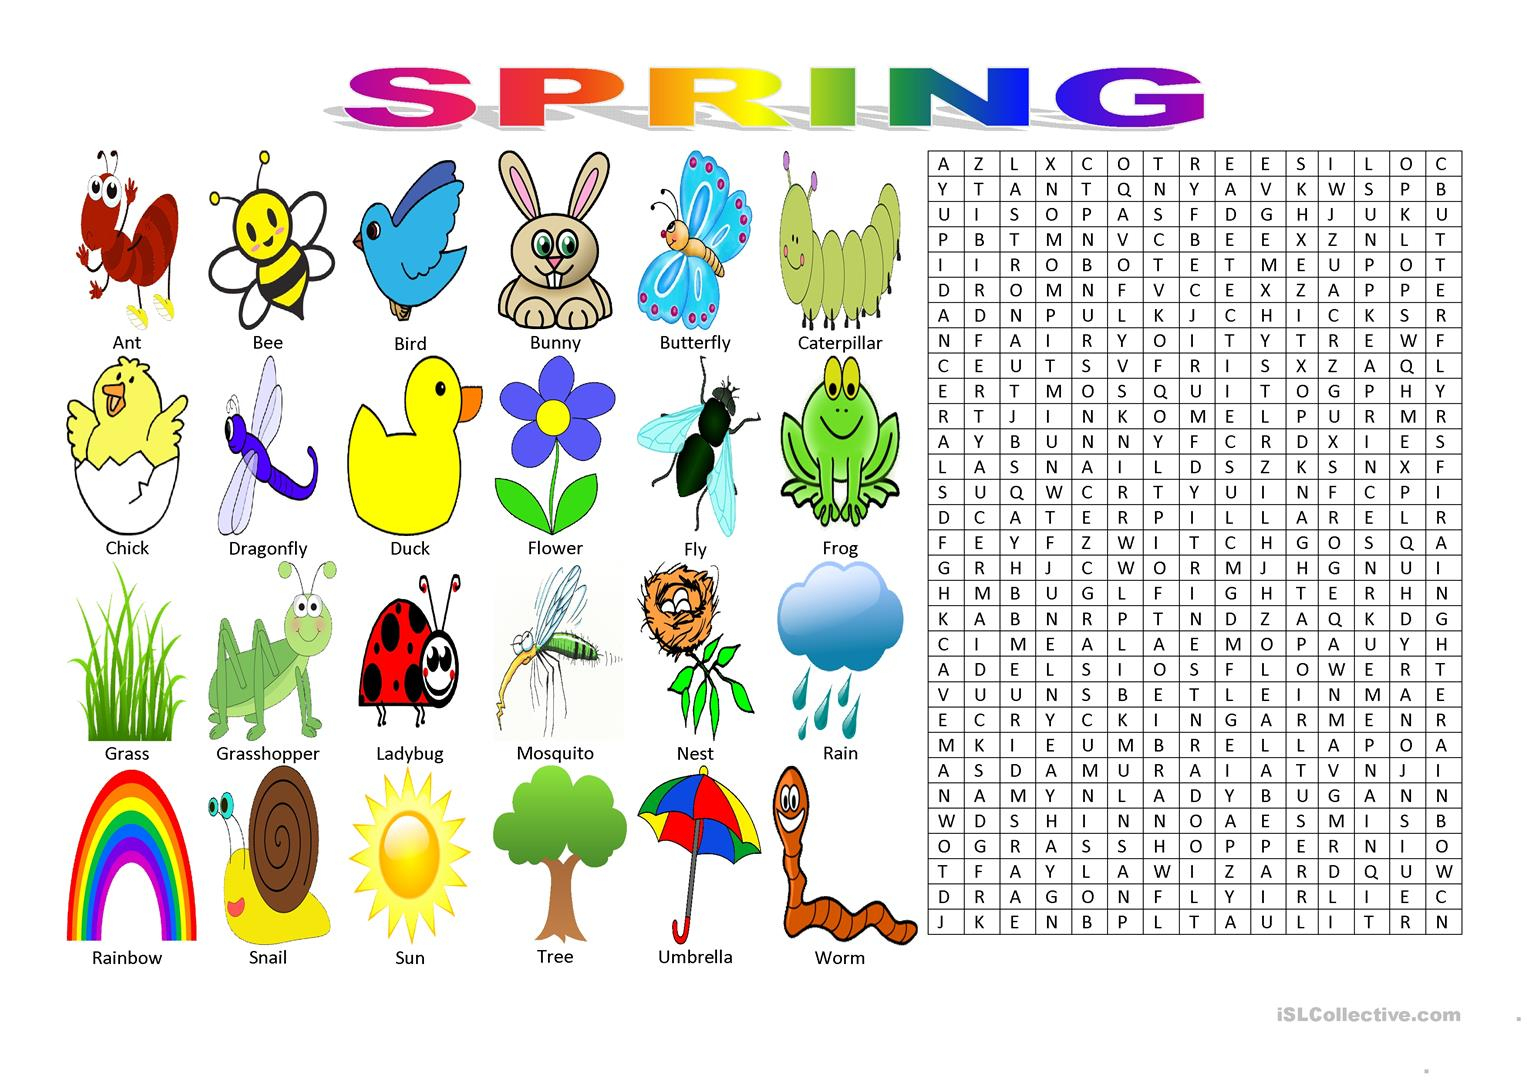 Spring Vocabulary (Wordsearch Puzzle) Worksheet - Free Esl Printable - Printable Spring Puzzles